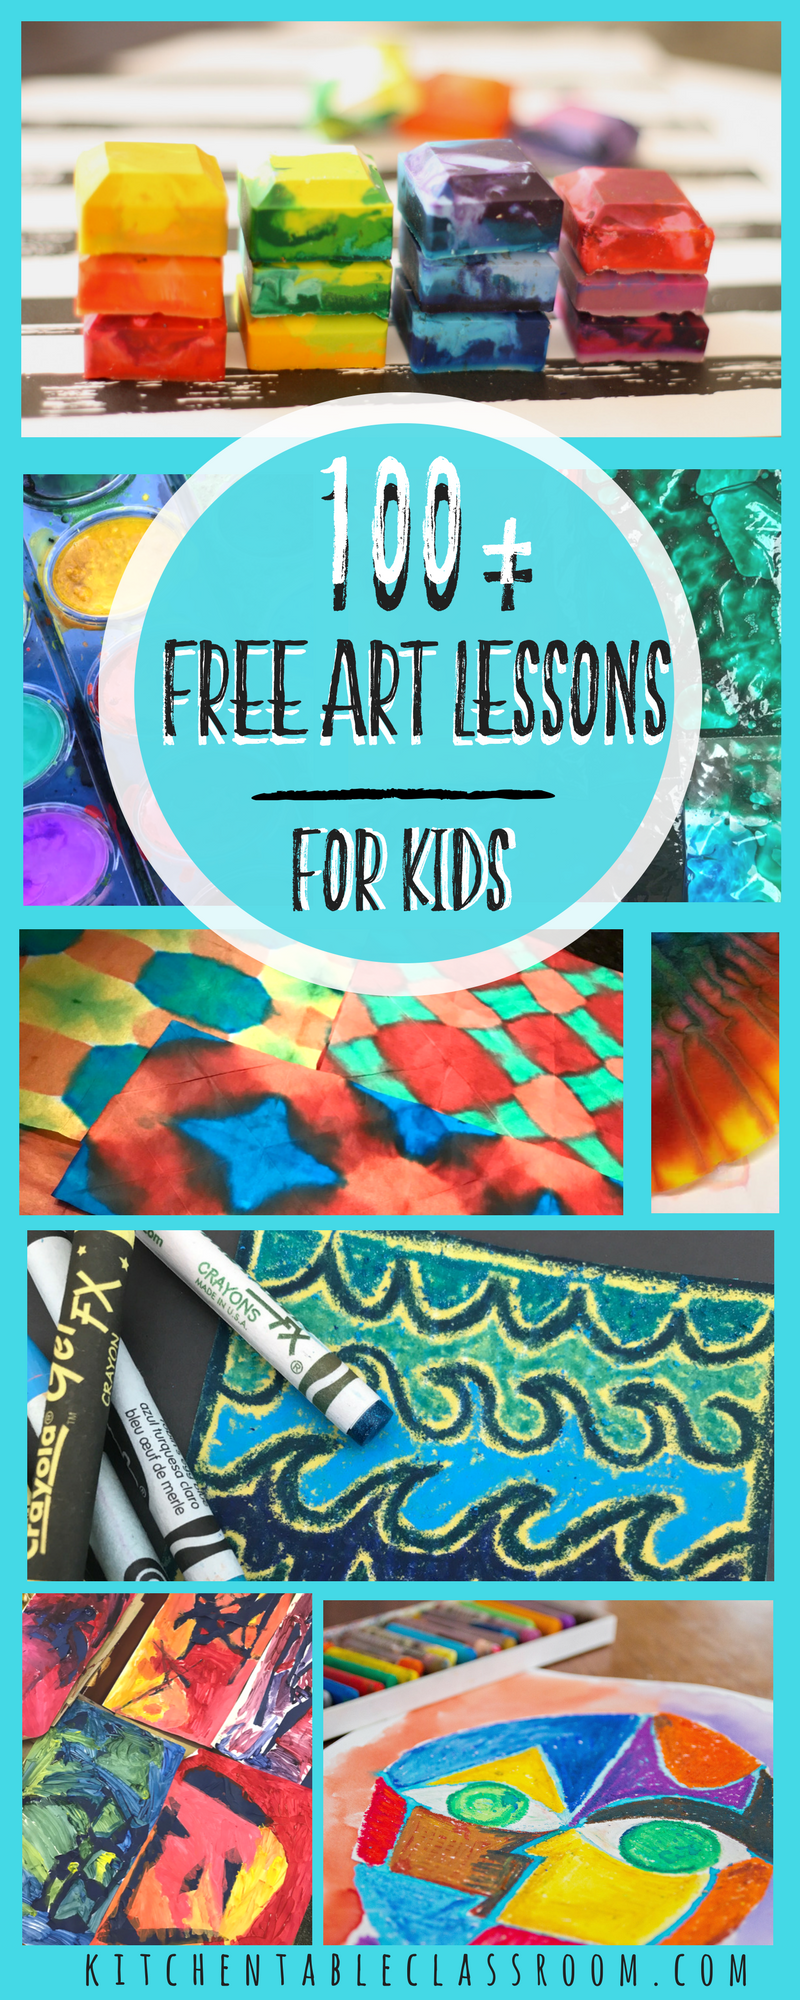 Over one hundred free detailed art lessons including printmaking ...